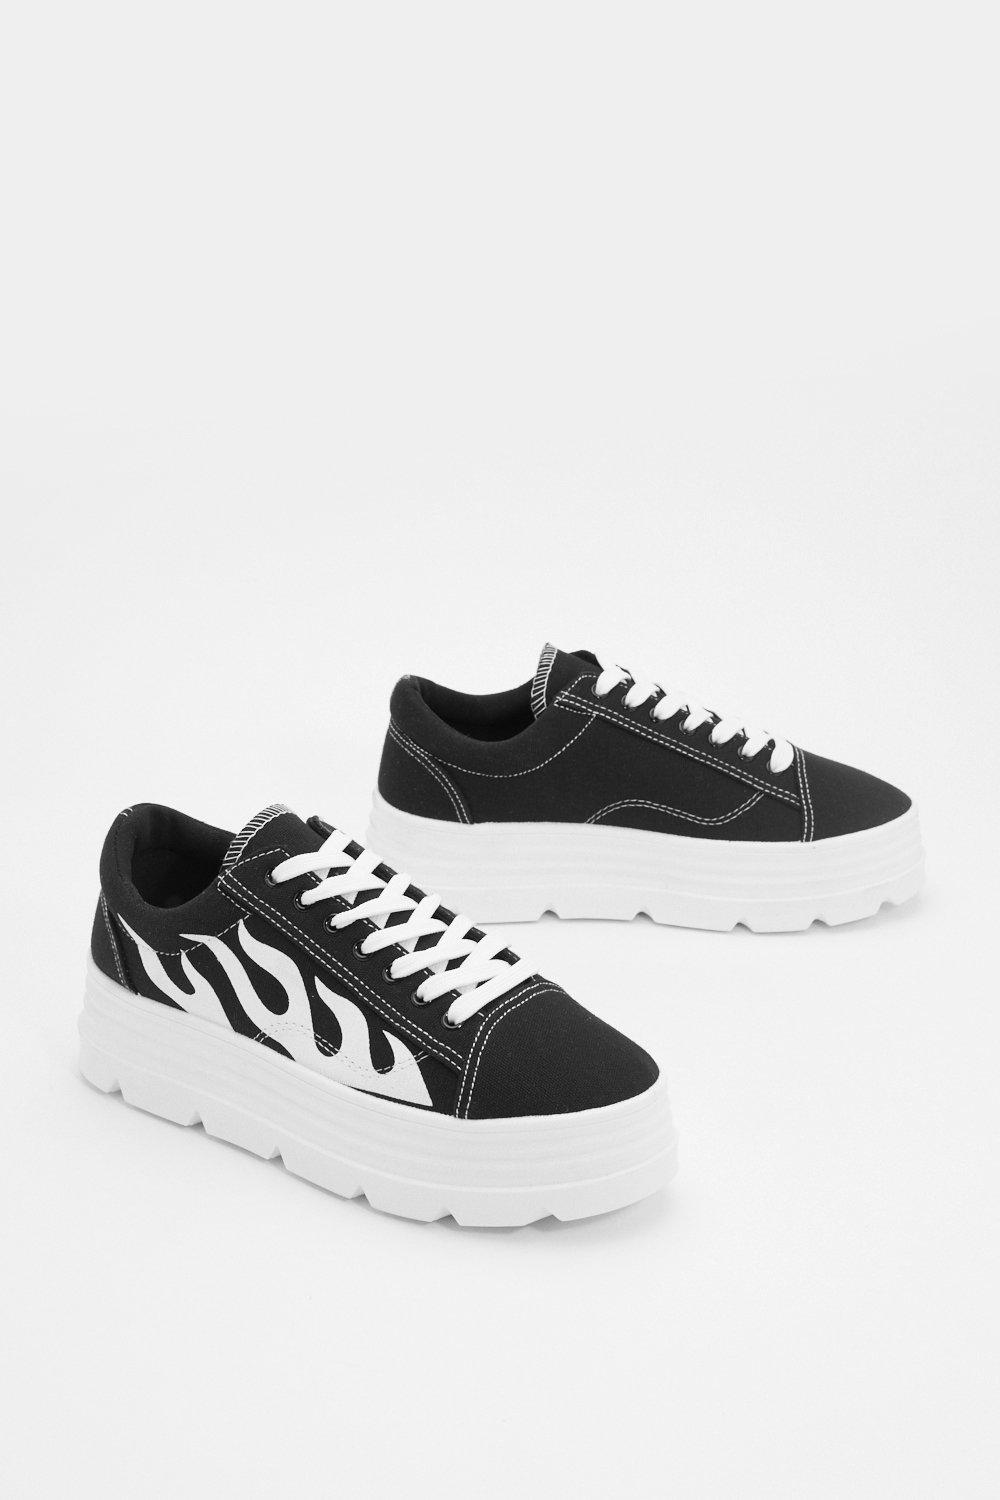 1b925ab1 The Heat is On Platform Sneakers | Shop Clothes at Nasty Gal!